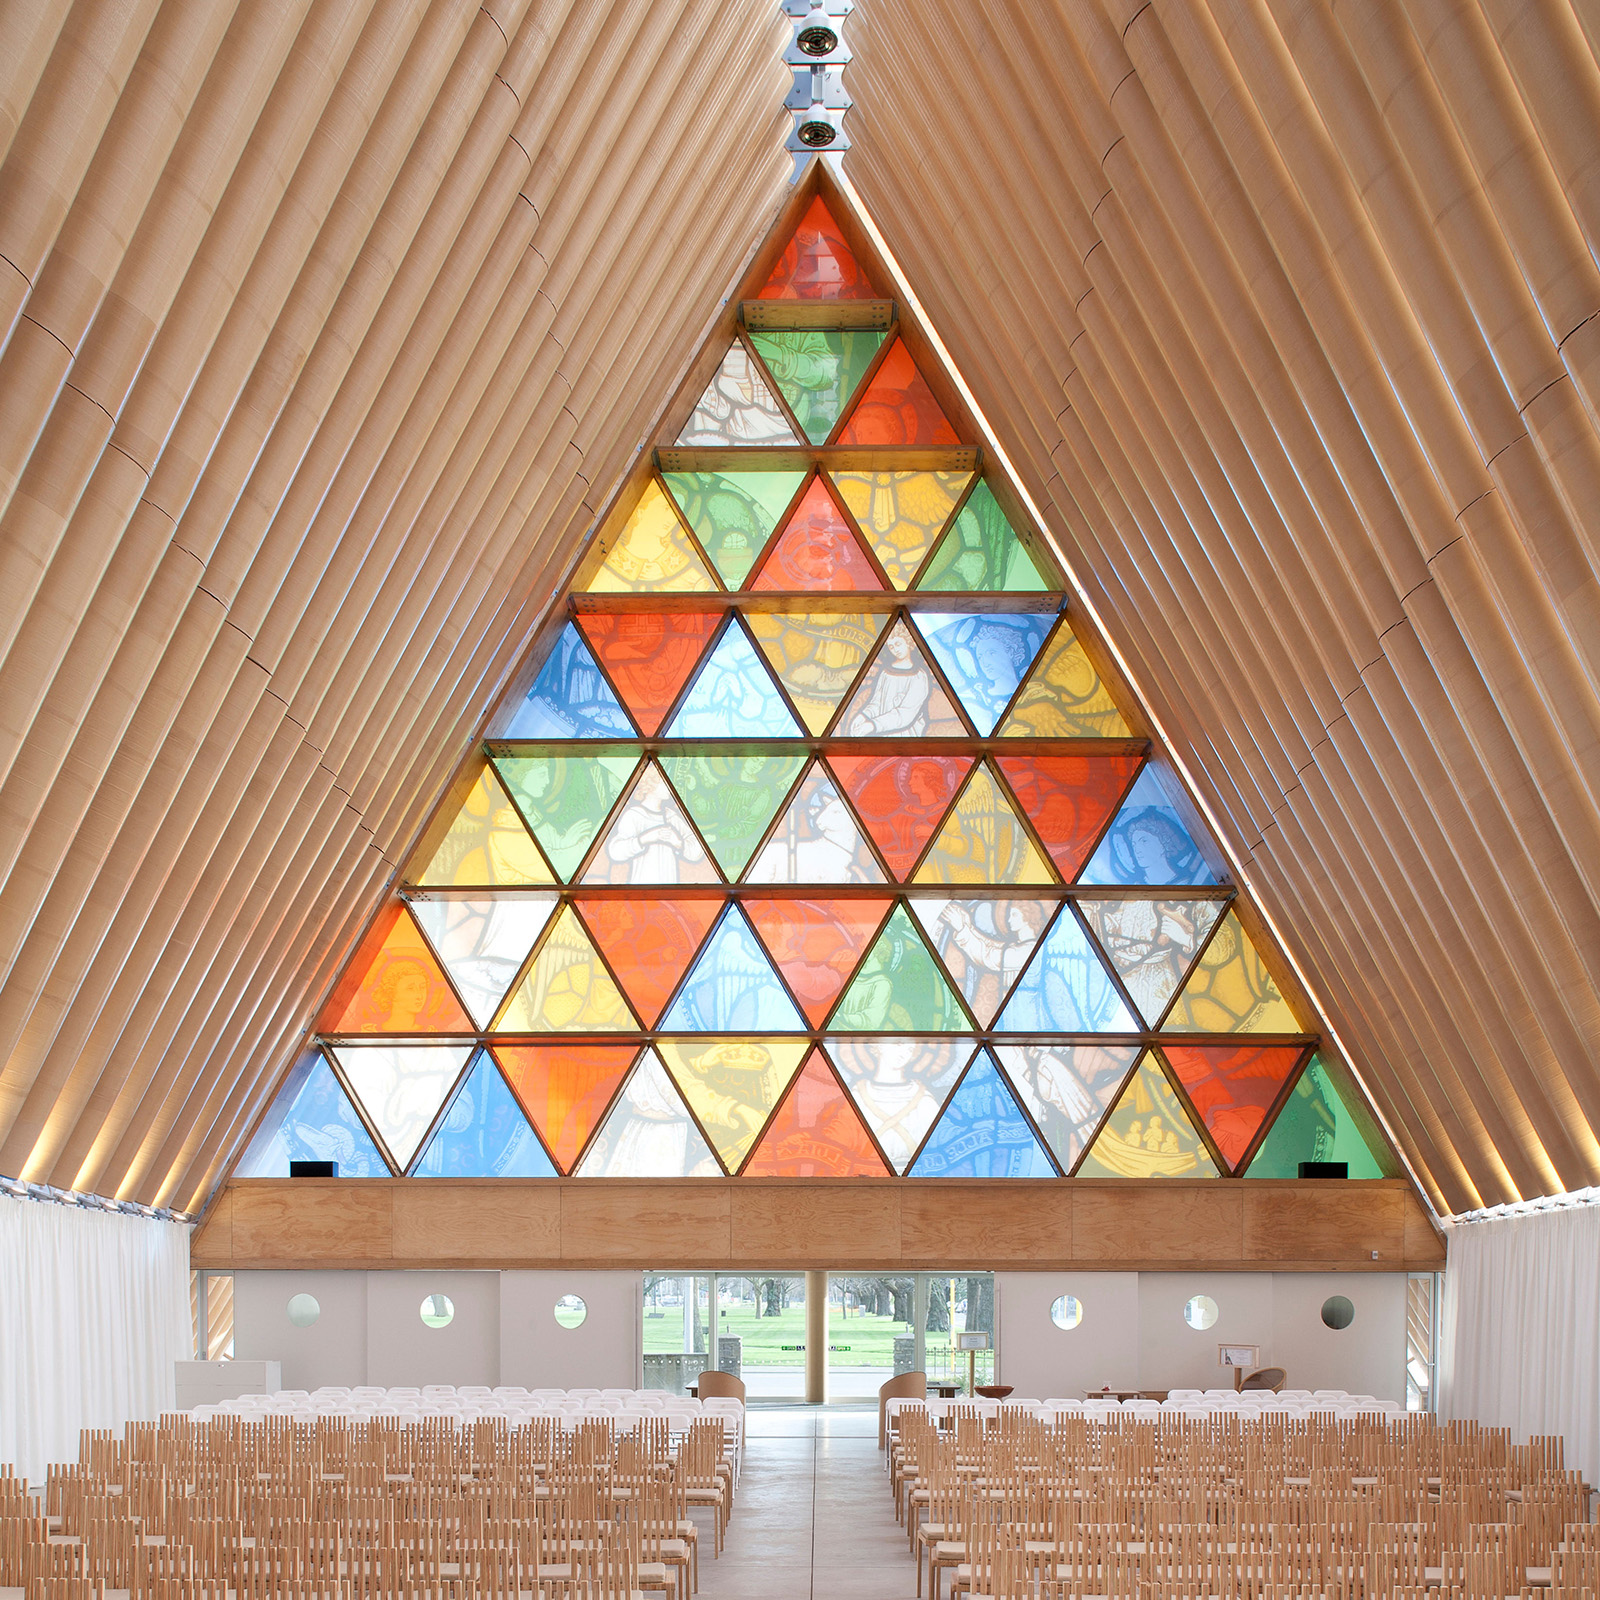 MAG1215-XL-new-zealand-cardboard-cathedral.jpg